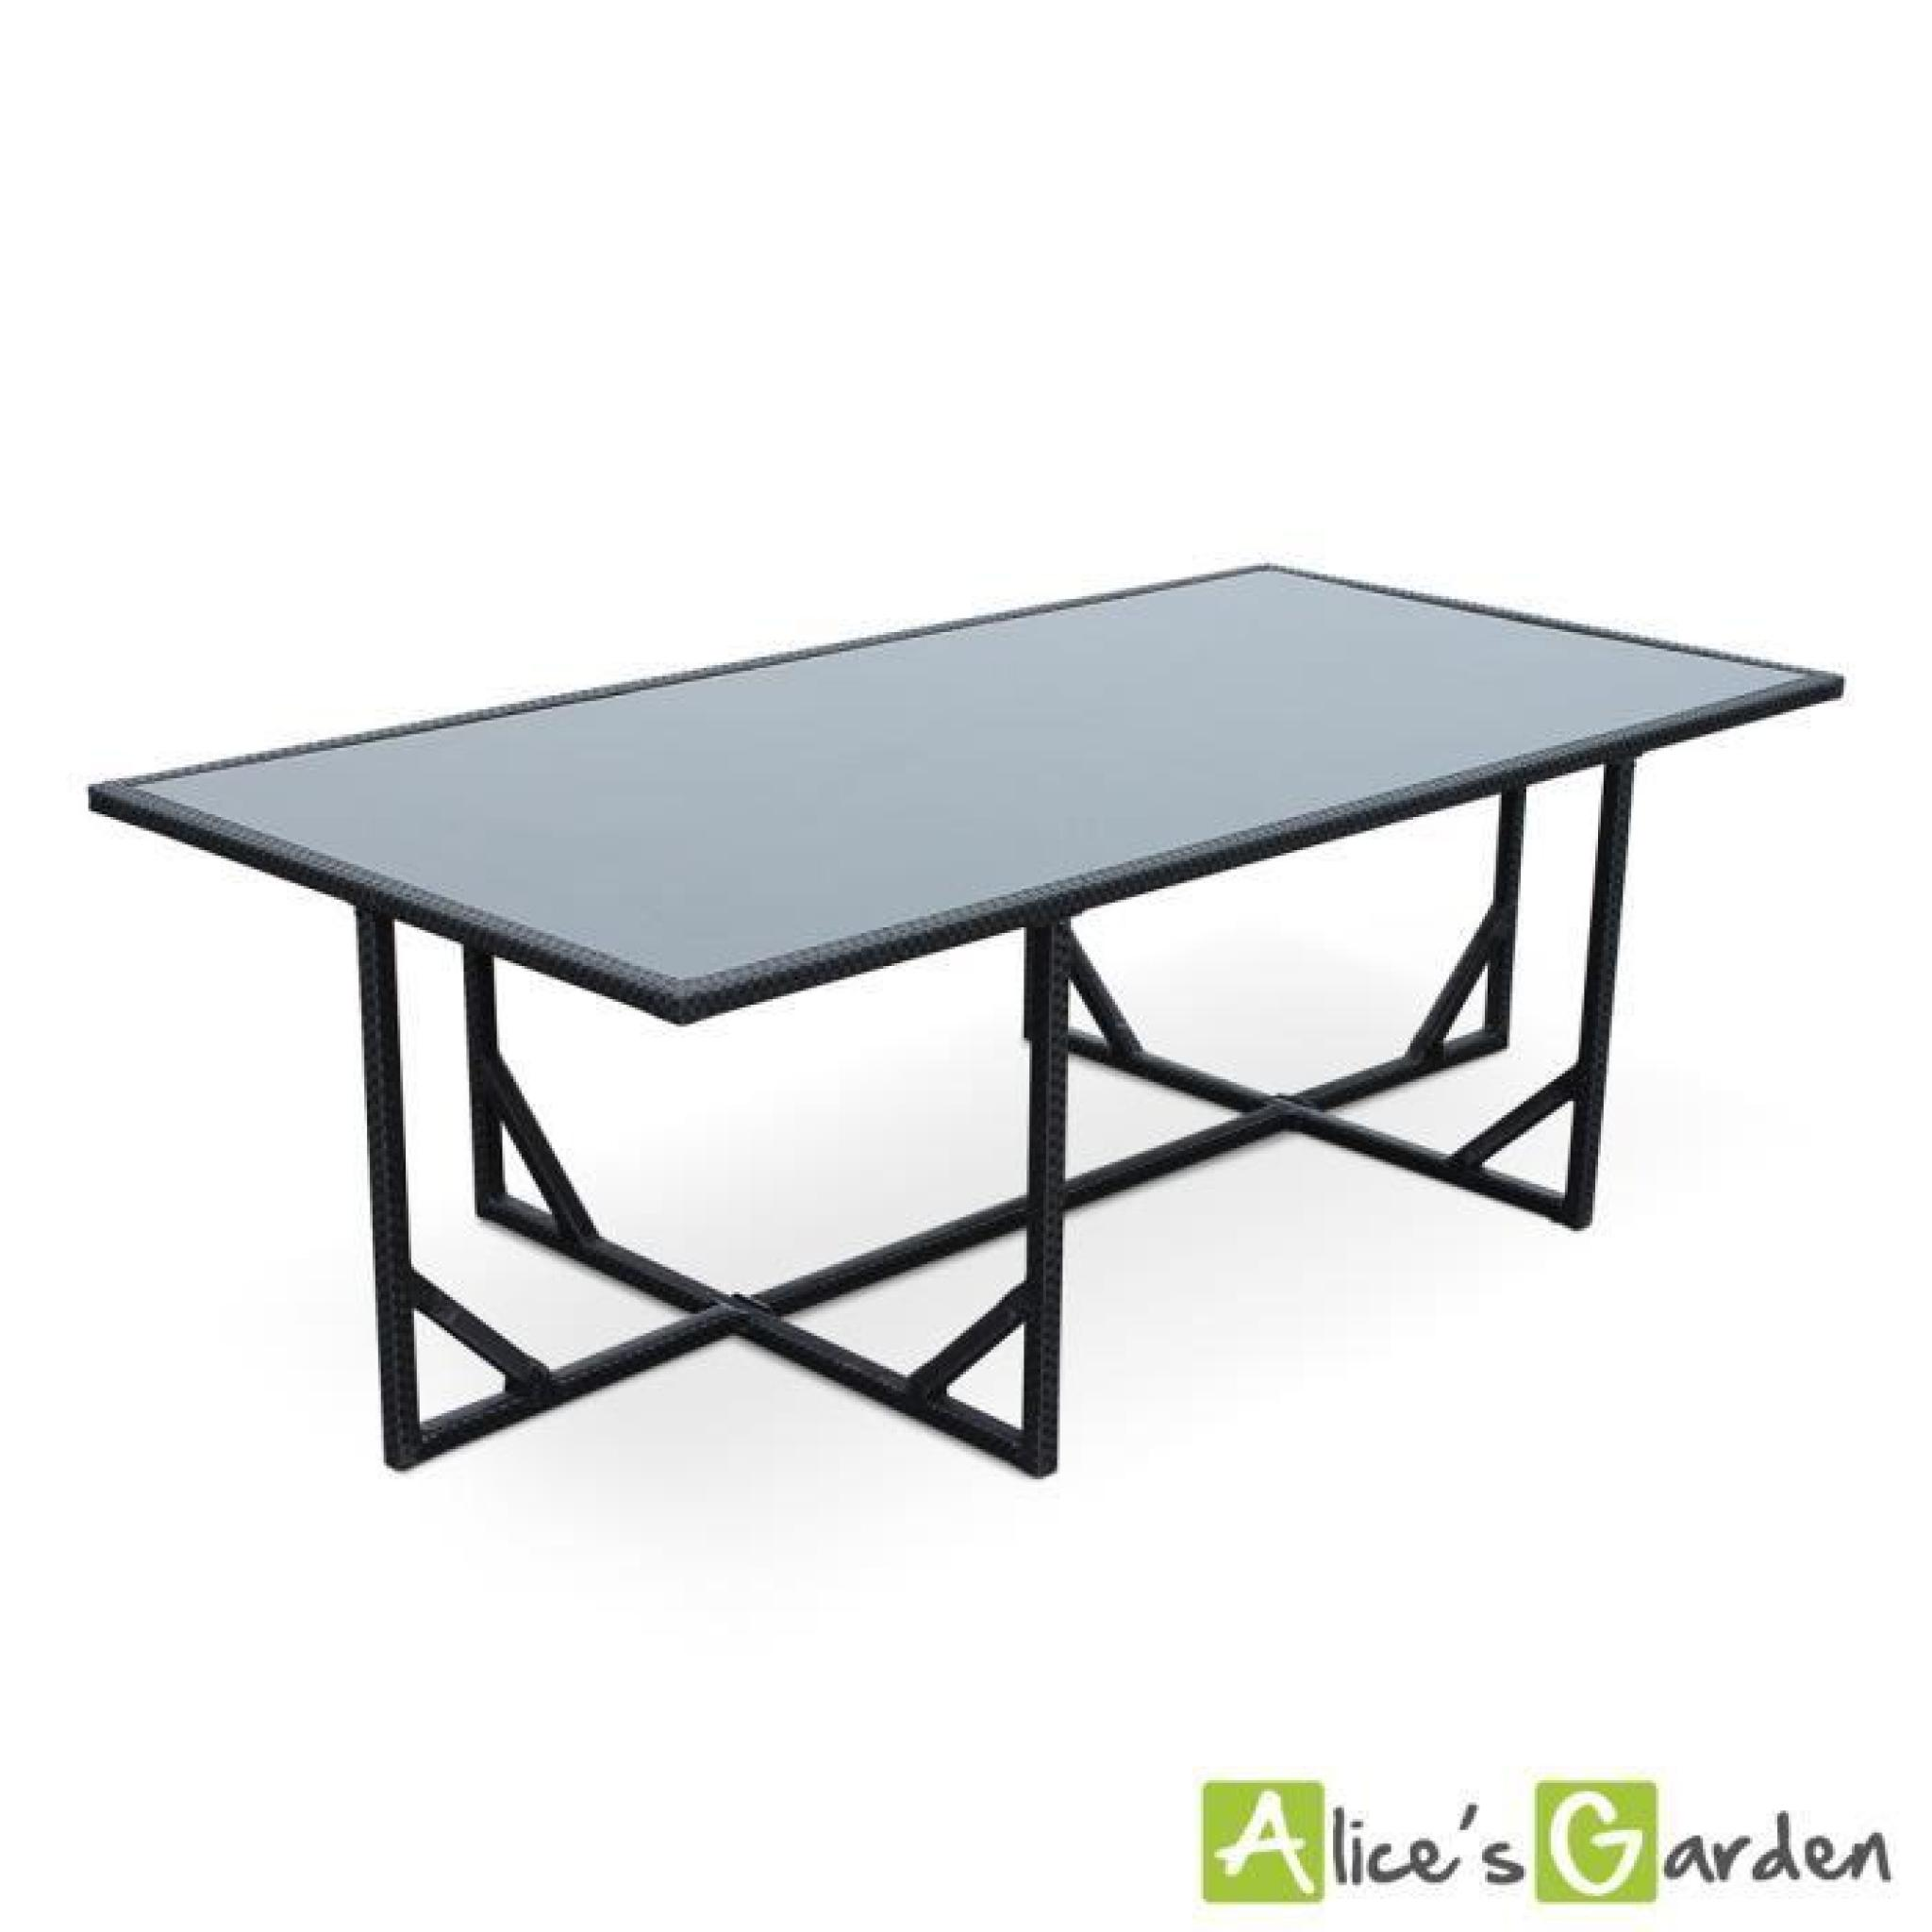 Salon de jardin vasto noir table en r sine tress e 8 12 for Table exterieur resine tressee